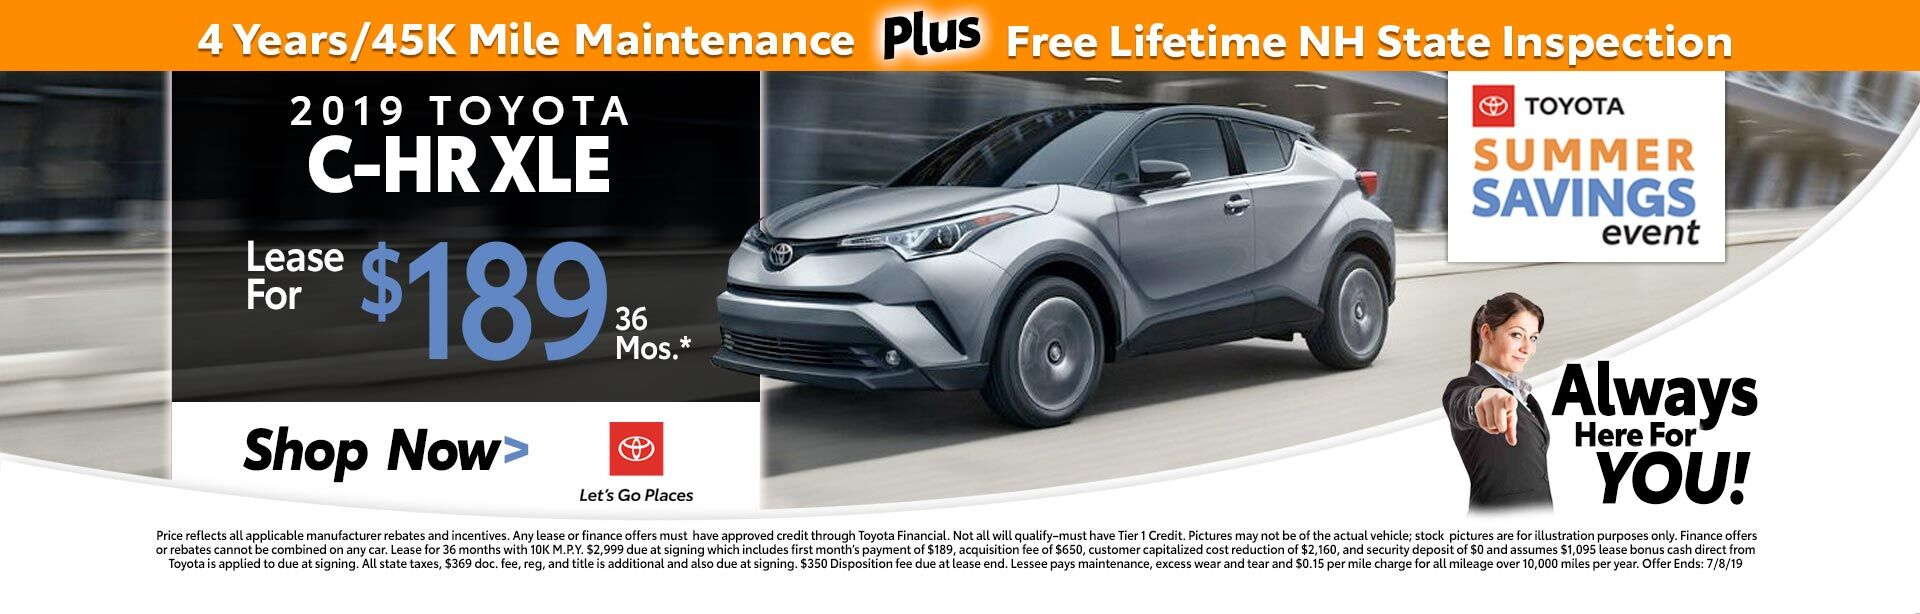 C-HR Lease Special